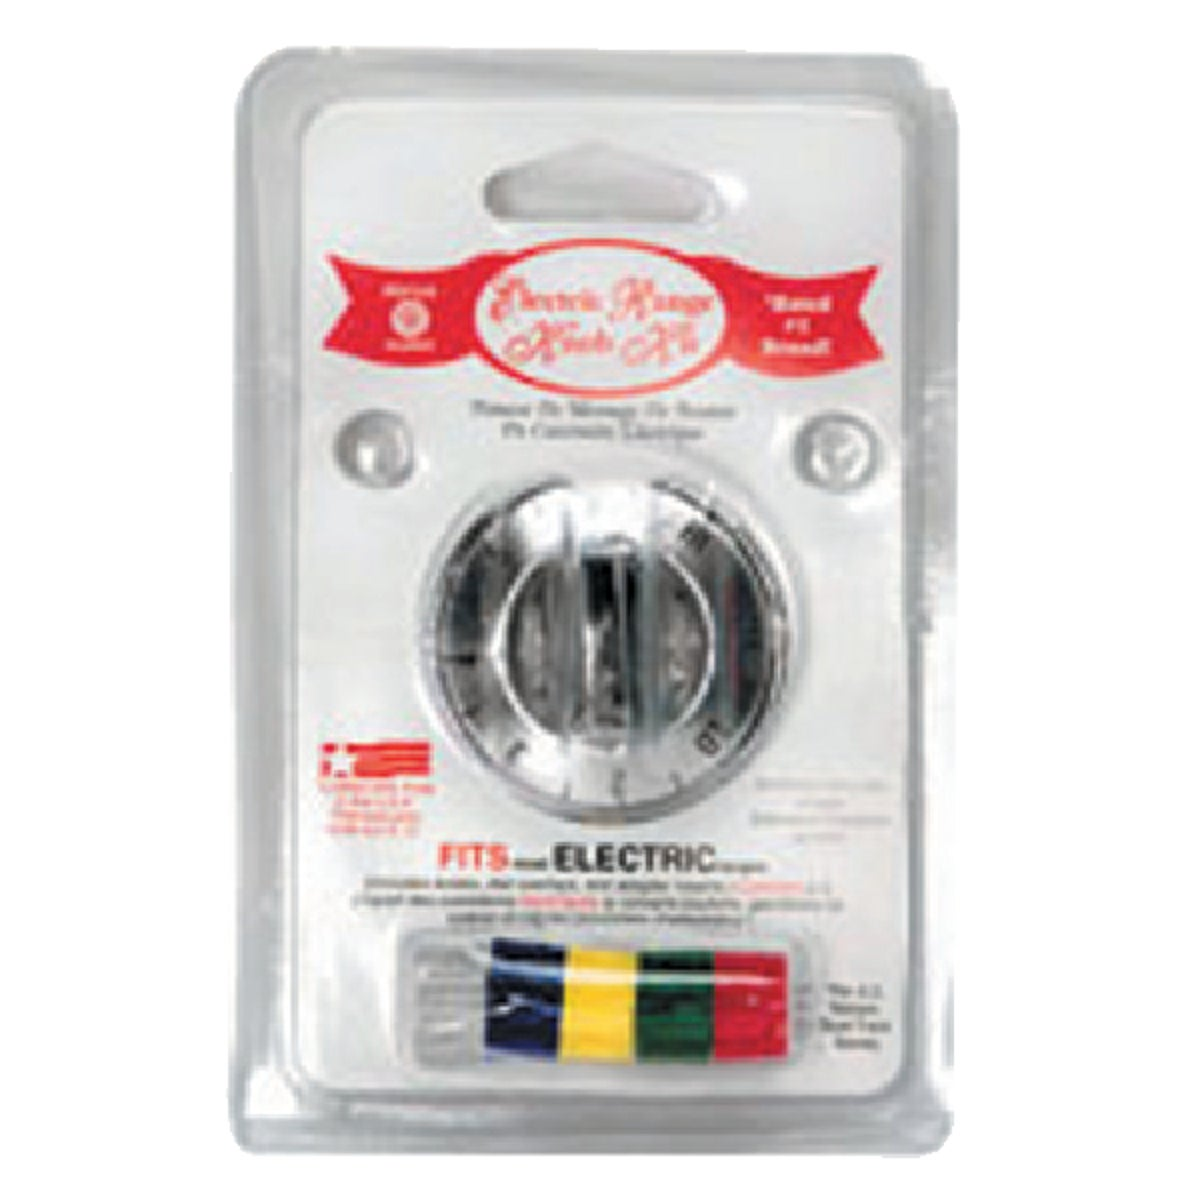 CHROME ELECTRIC KNOB KIT - 8121 by Range Kleen Mfg Inc